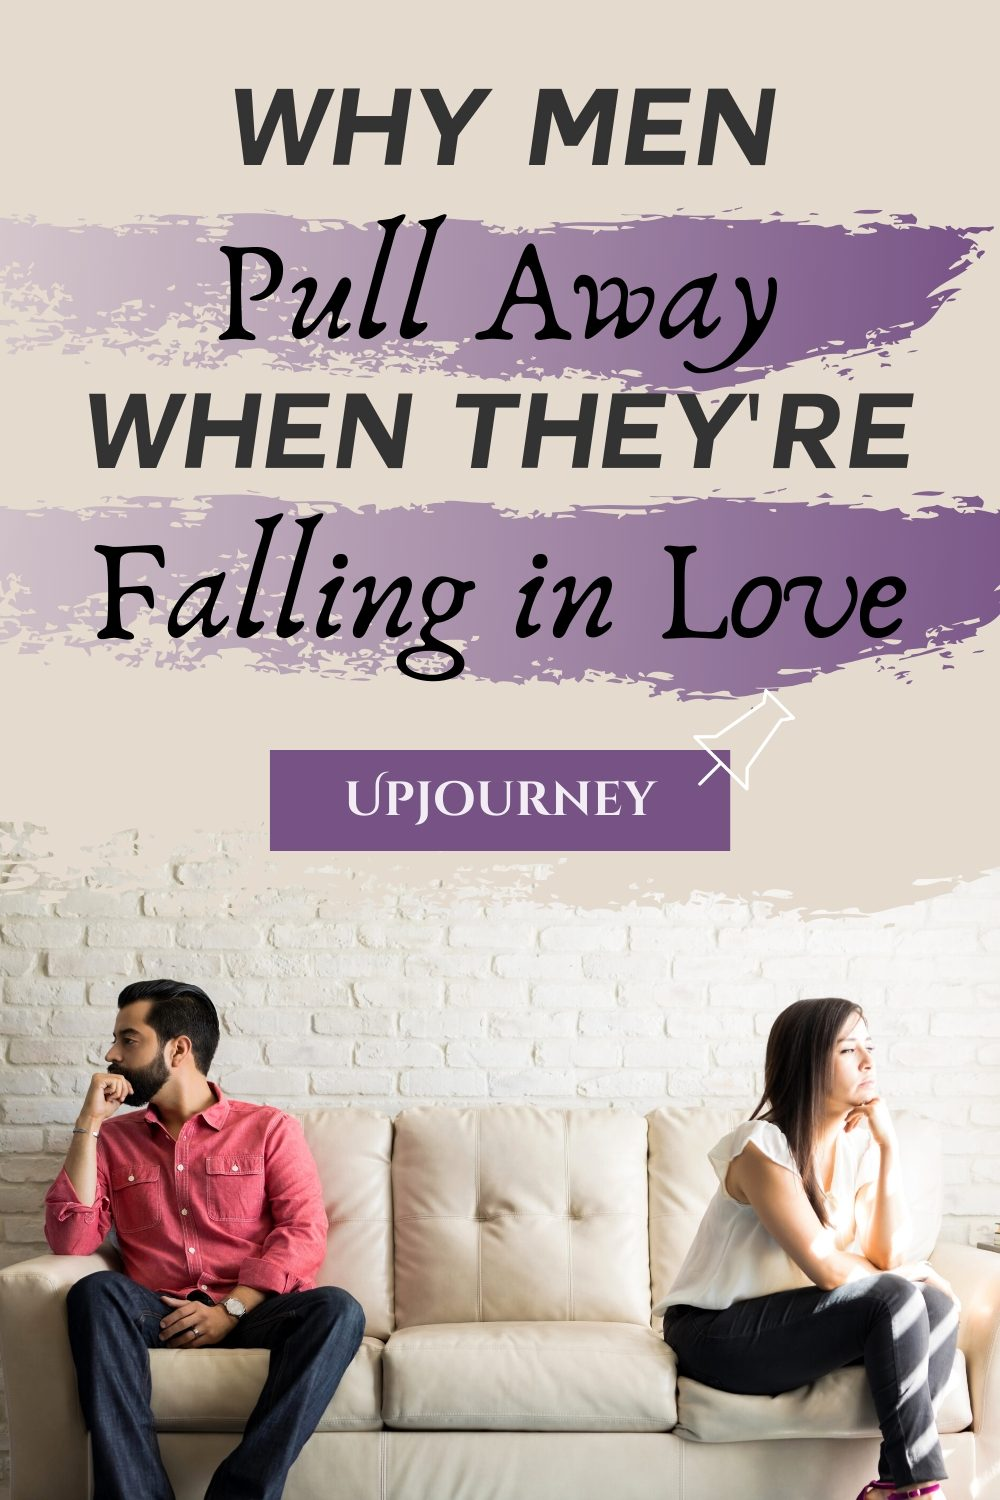 Why Men Pull Away When They Are Falling in Love